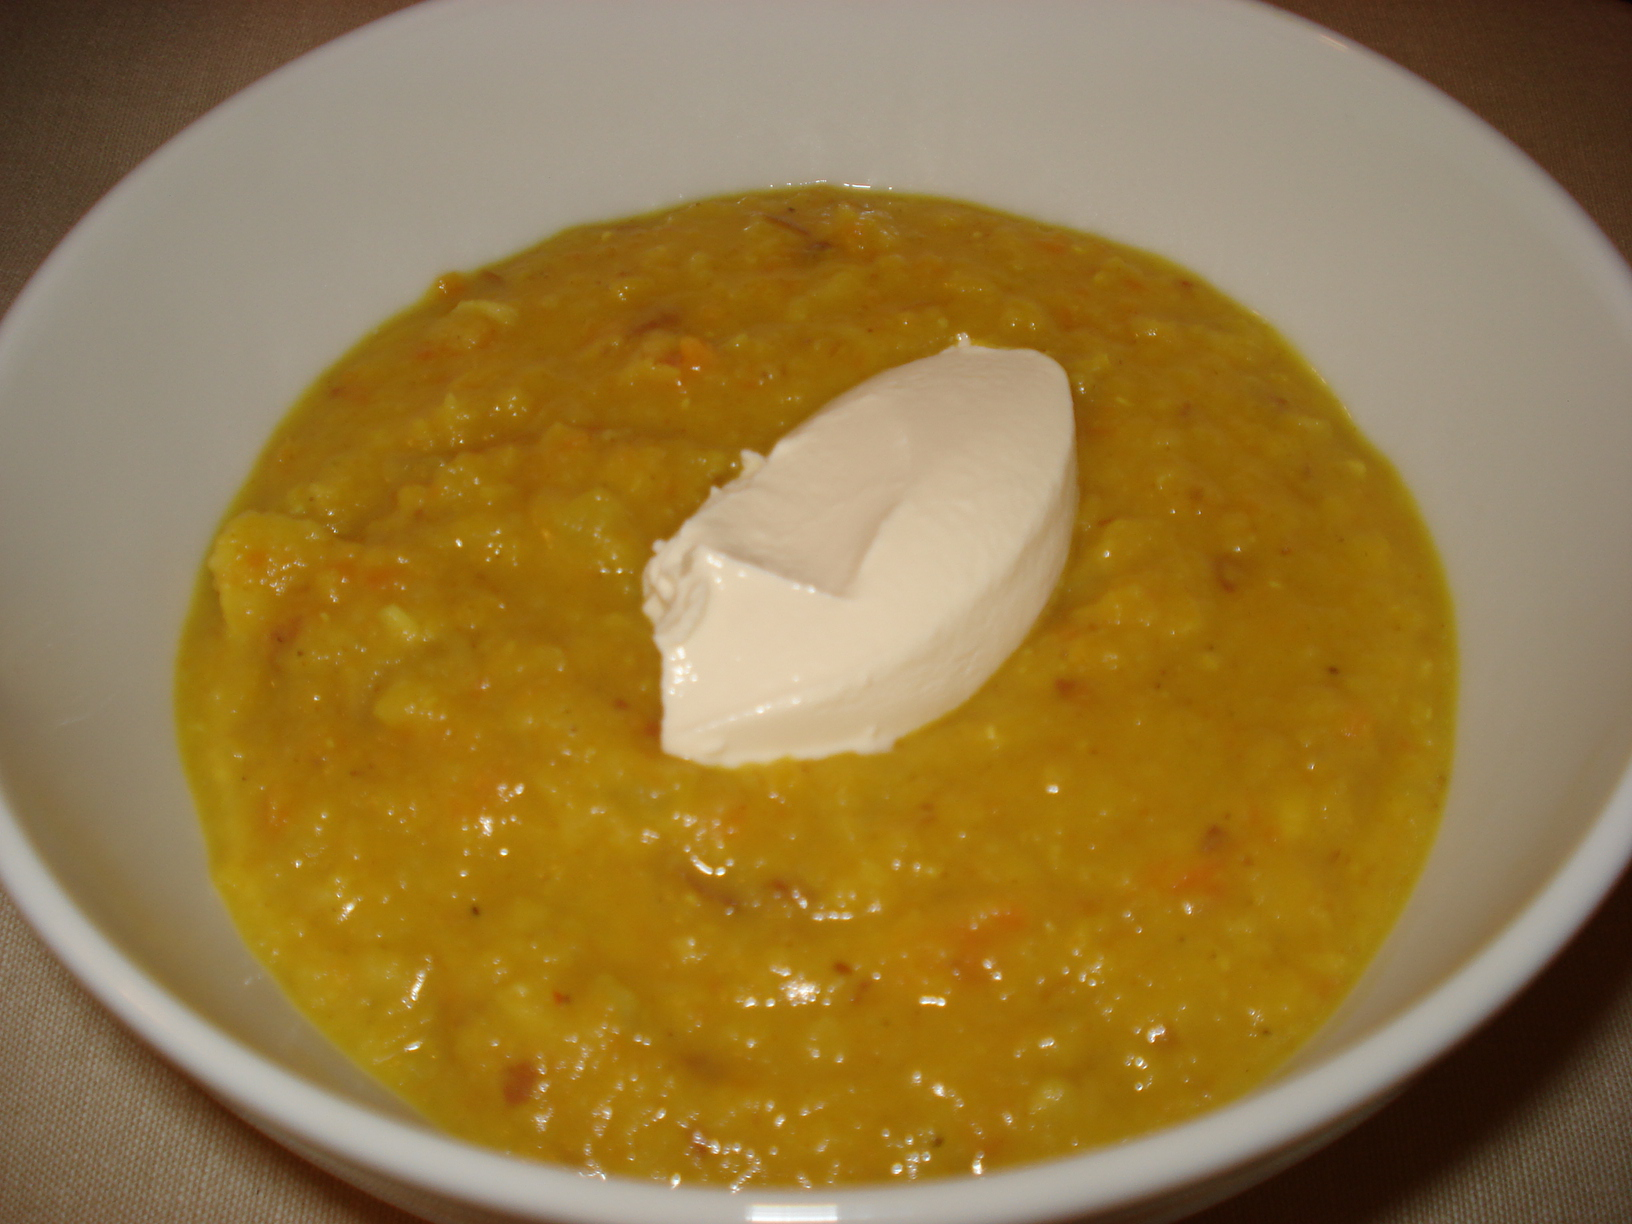 Lentil soup with curry and lemon